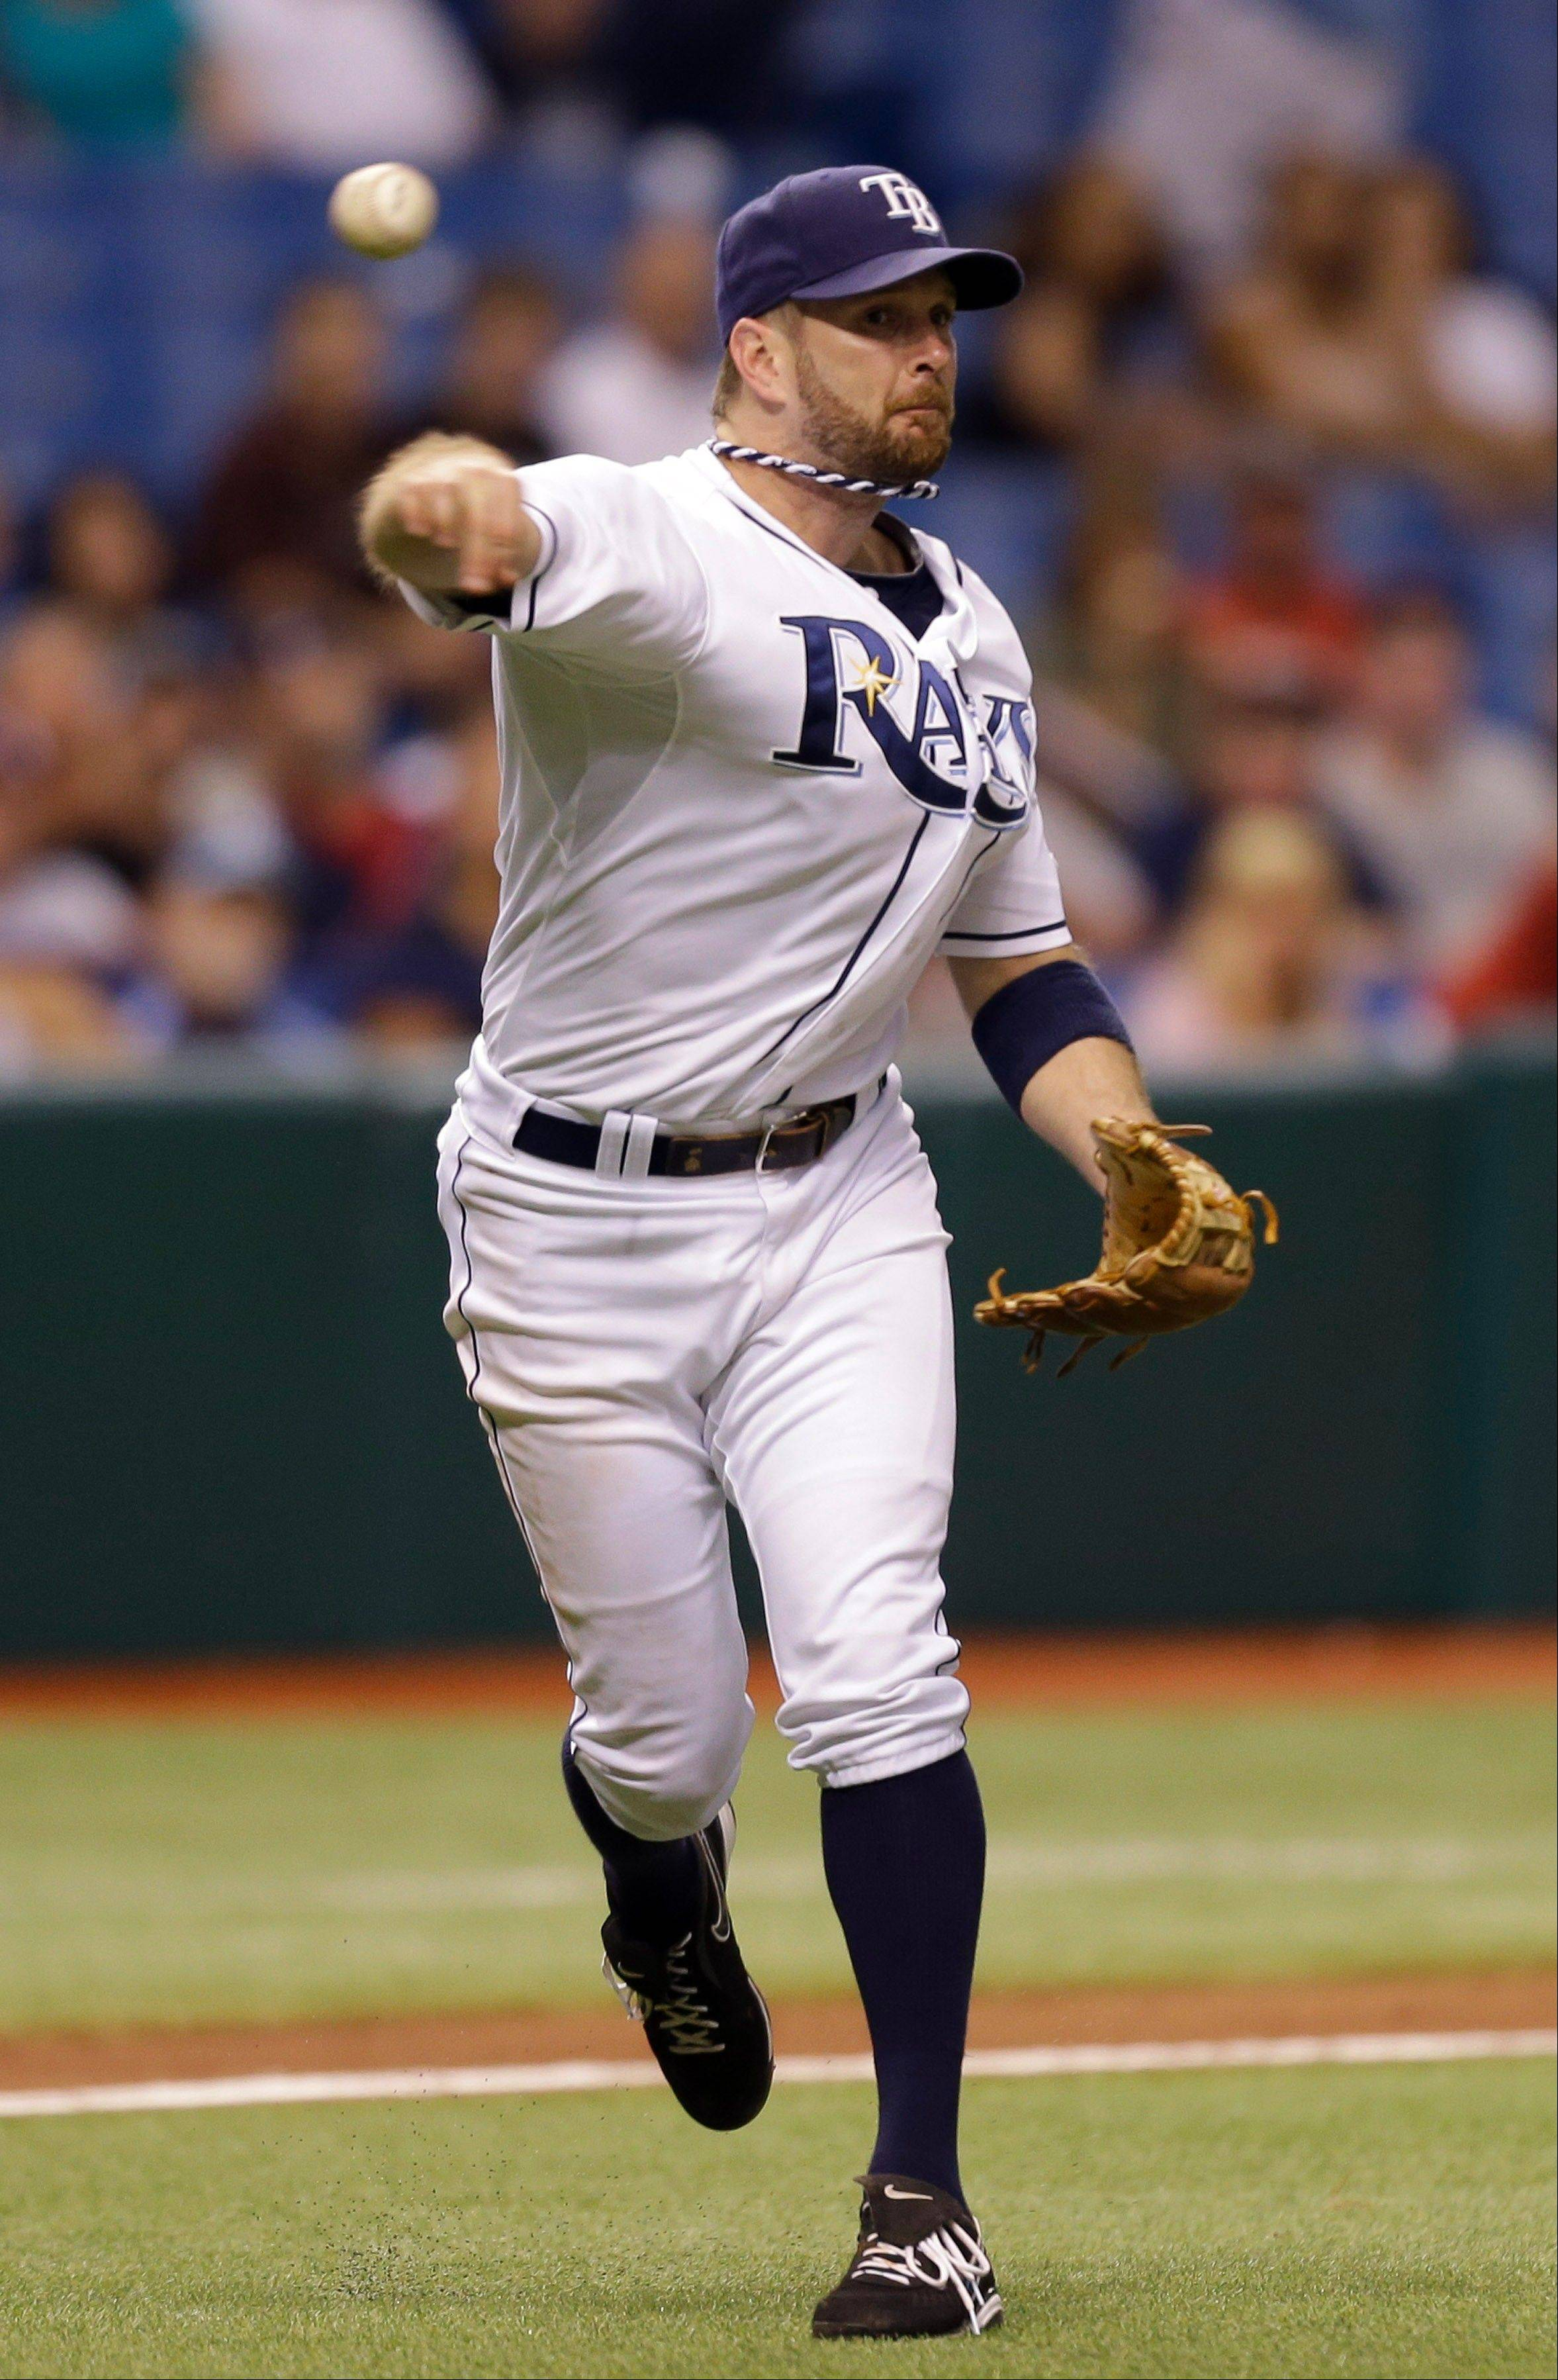 Tampa Bay Rays third baseman Jeff Keppinger throws out Boston Red Sox's Jose Iglesias during the seventh inning of a baseball game Monday, Sept. 17, 2012, in St. Petersburg, Fla.